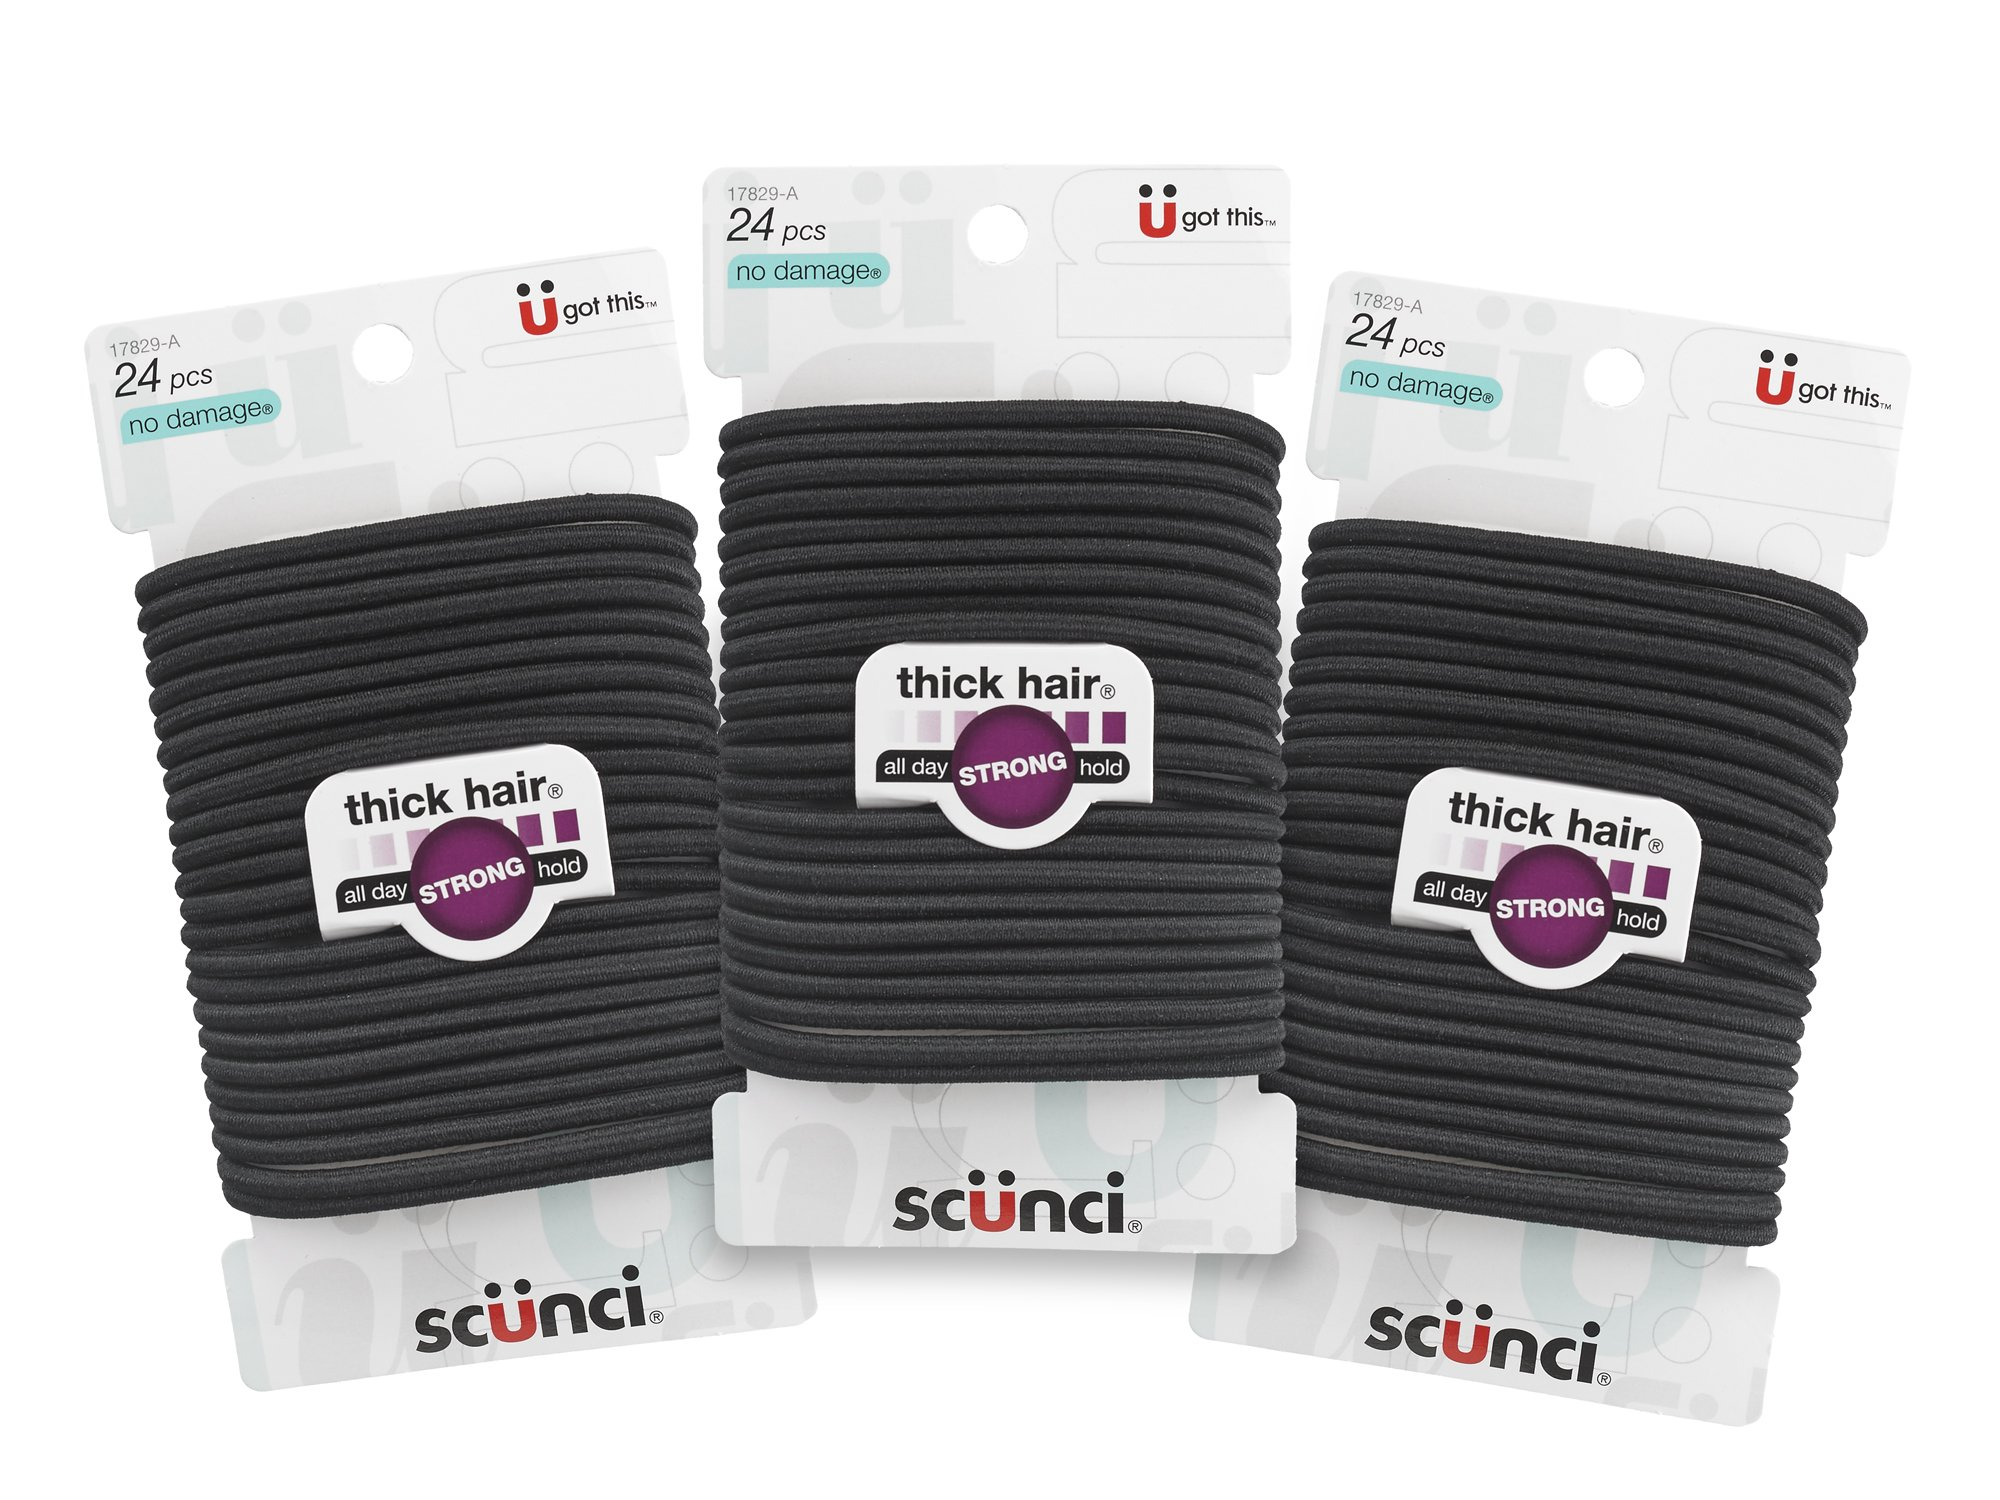 Scunci Effortless Beauty Thick Hair No-Damage Elastics, Black, 24 count(Pack of 3) by Scunci